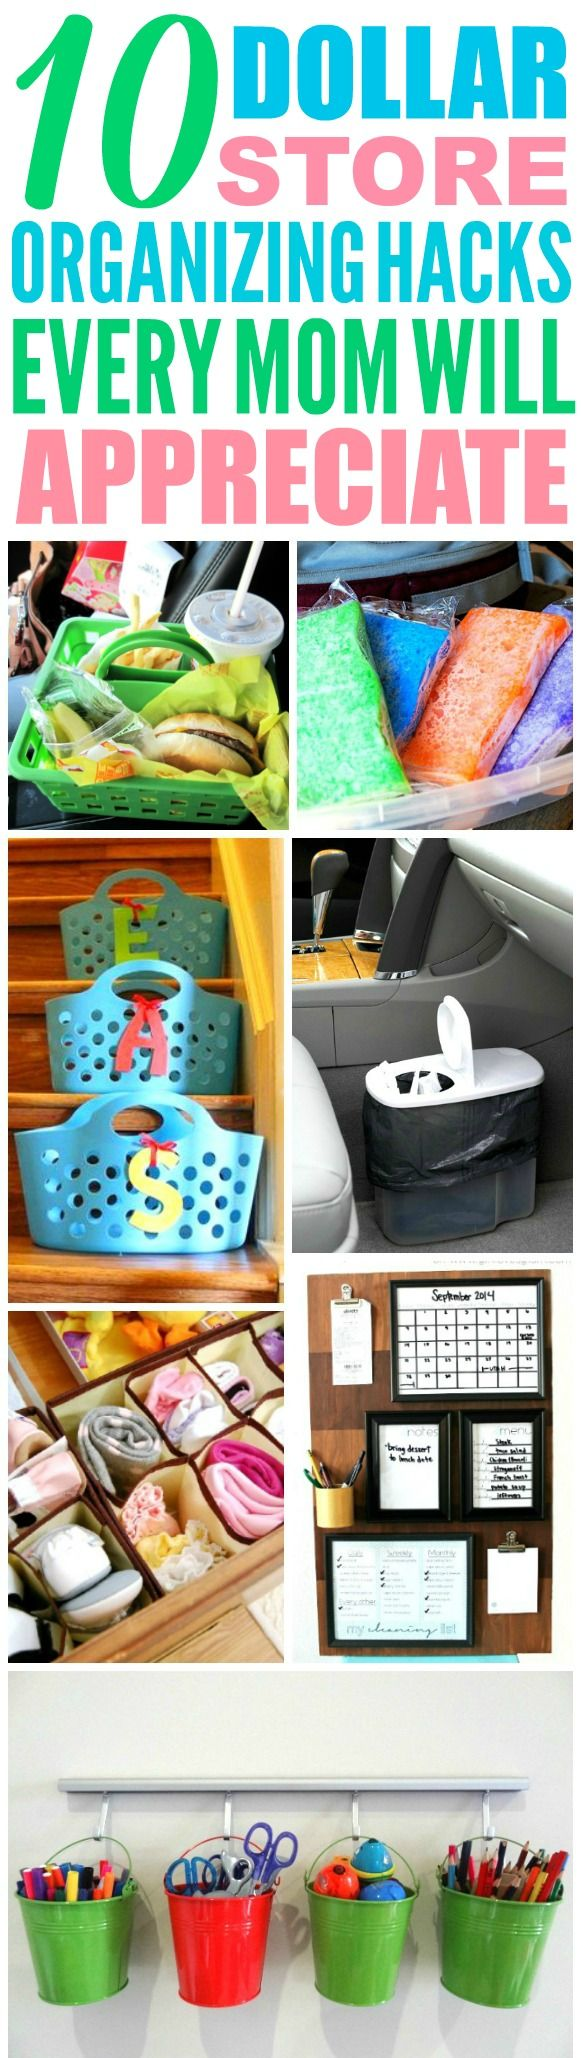 These 10 Dollar Store Organization hacks are THE BEST! Now I have an AMAZING way to keep my home clean as a parent! I love organization hacks for kids! Definitely pinning!